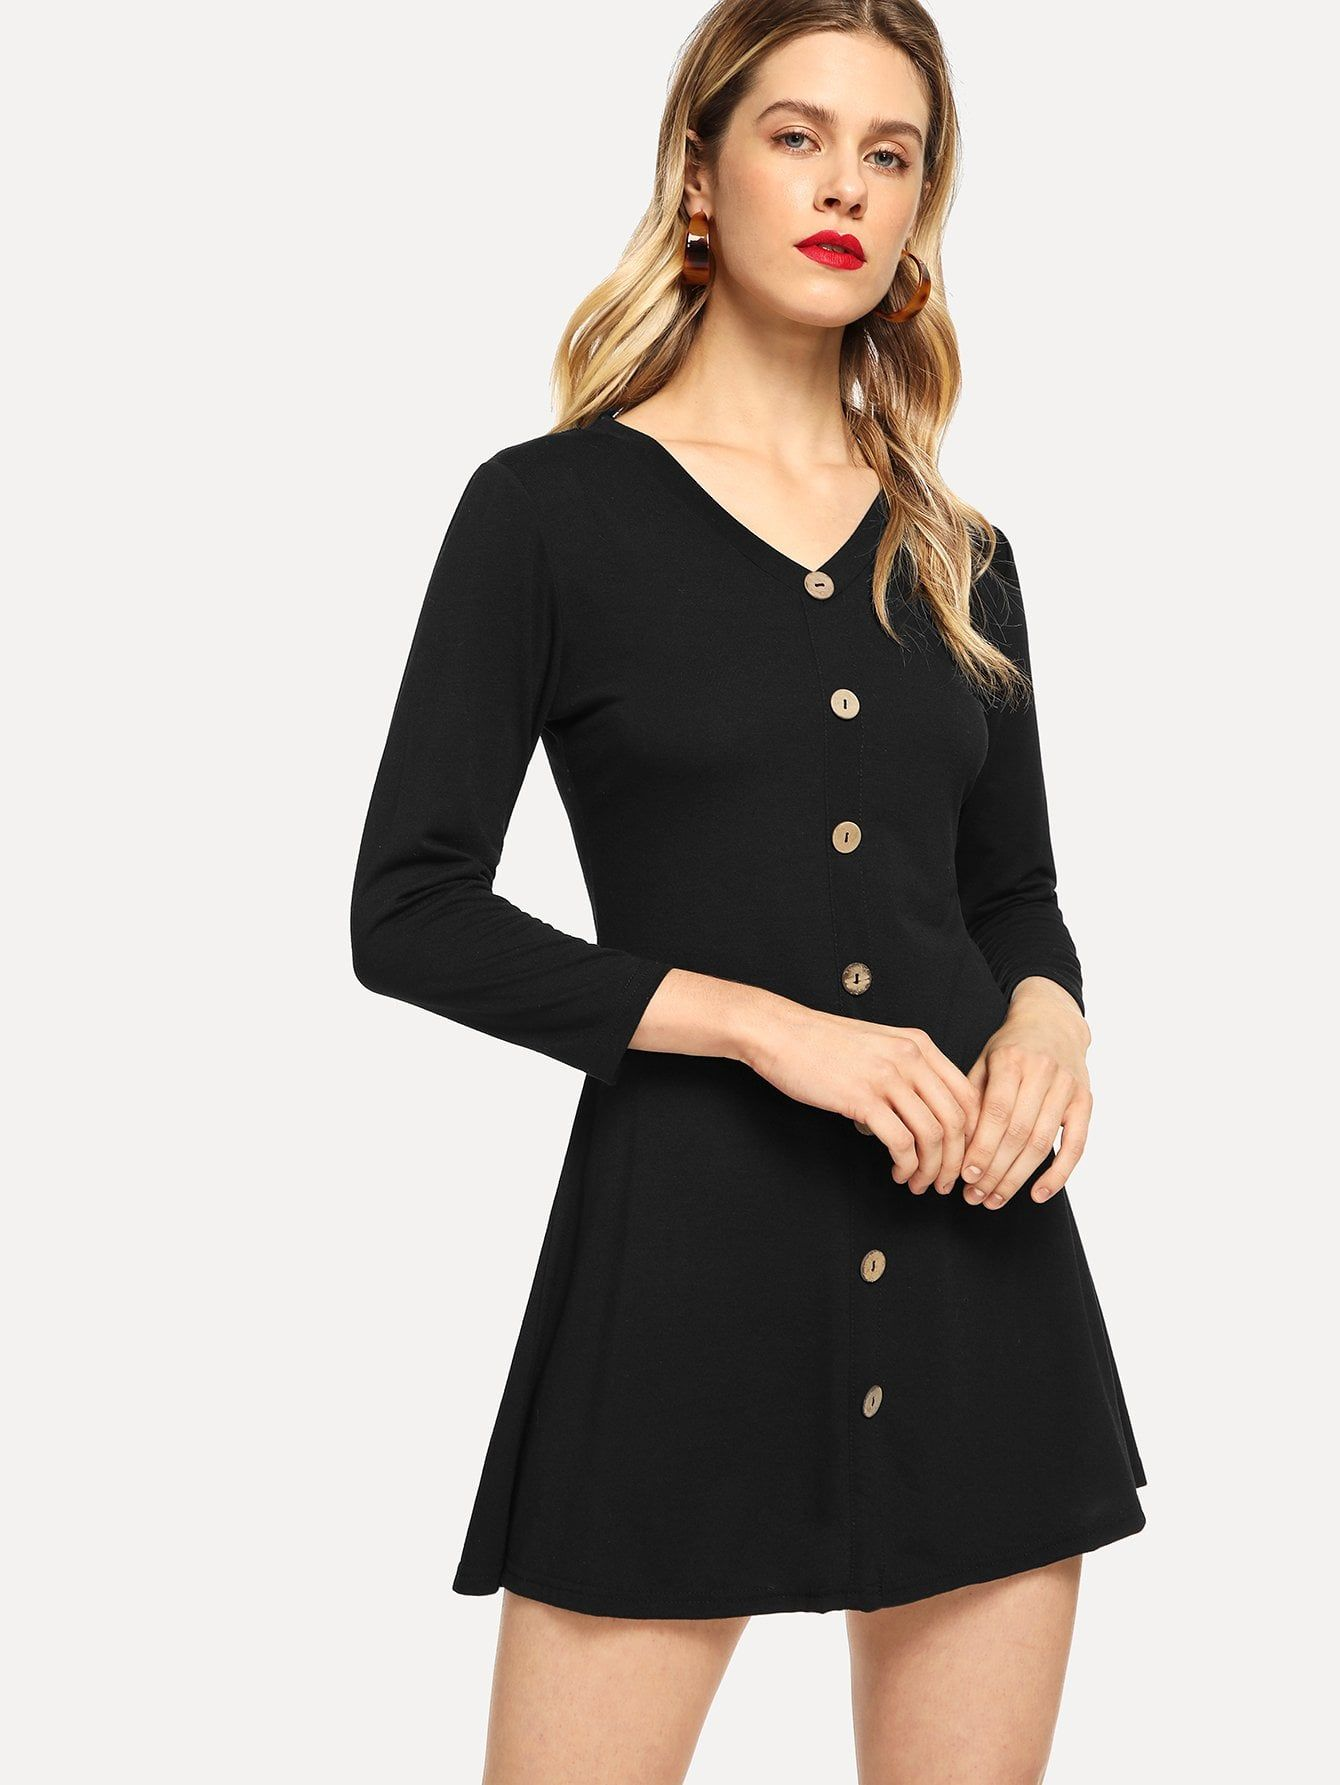 ... Dress. Casual Button Plain Shift Flared V Neck Long Sleeve Natural  Black Short Length Button Through Solid. Women s ... 564d3d17f684